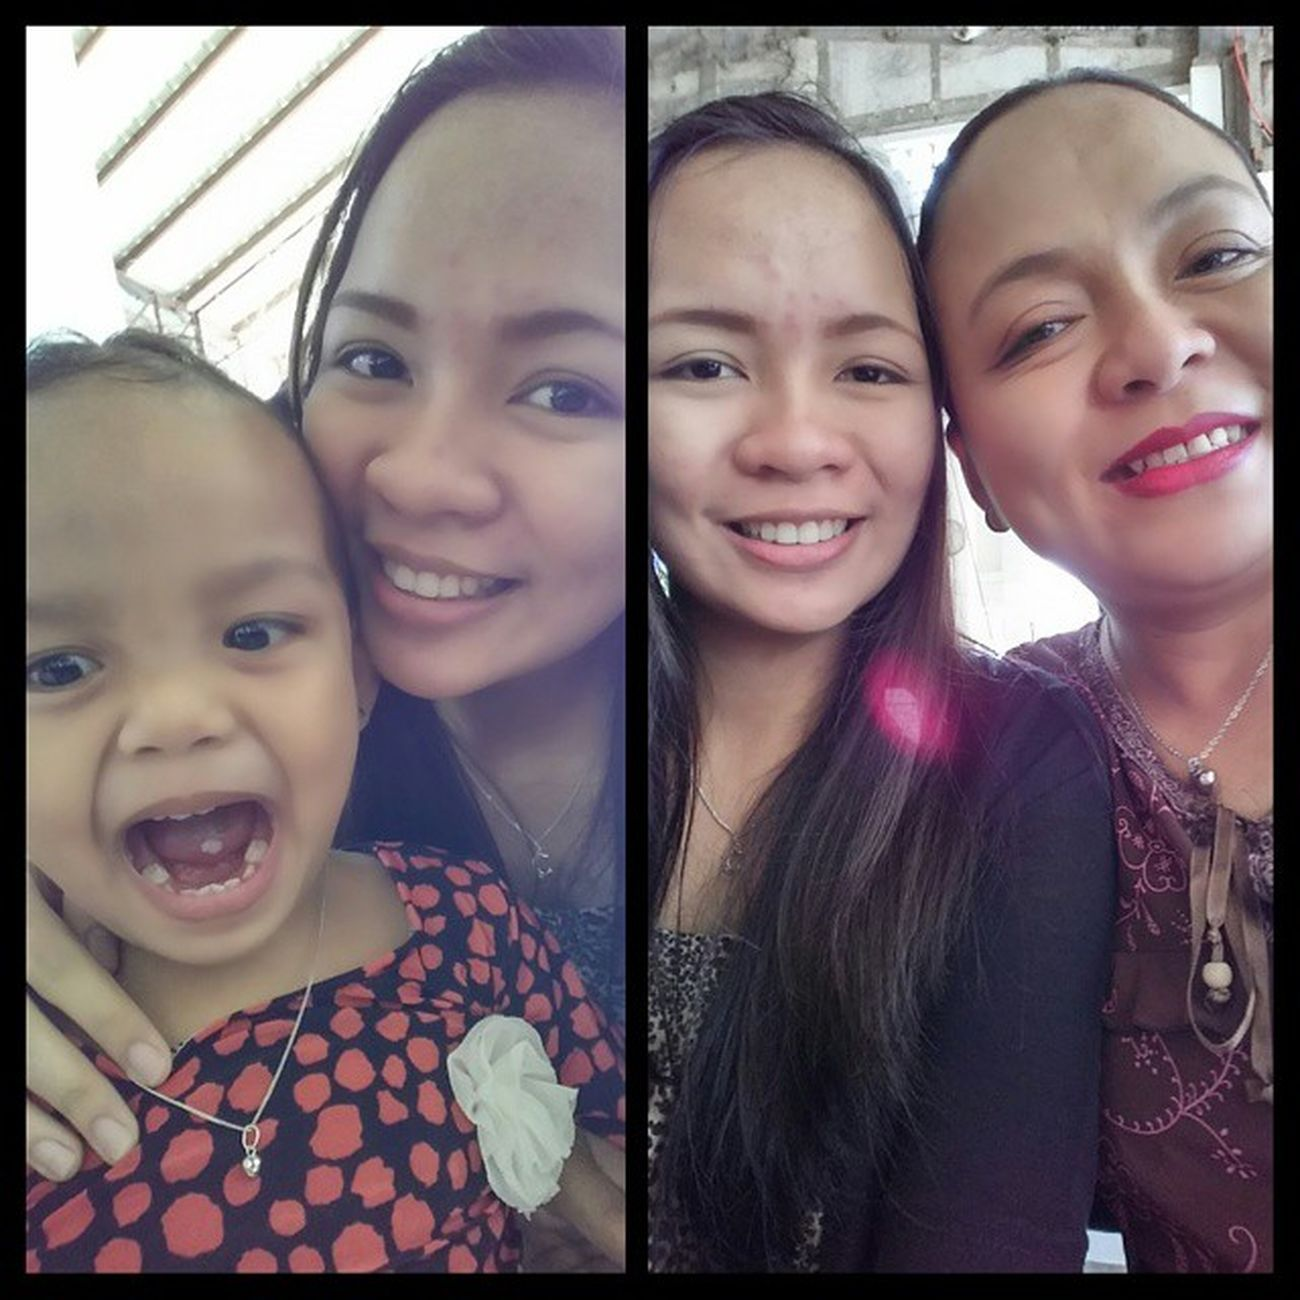 Like mother, like daughters 💁 LoveOurSelfie Monthoflove ❤